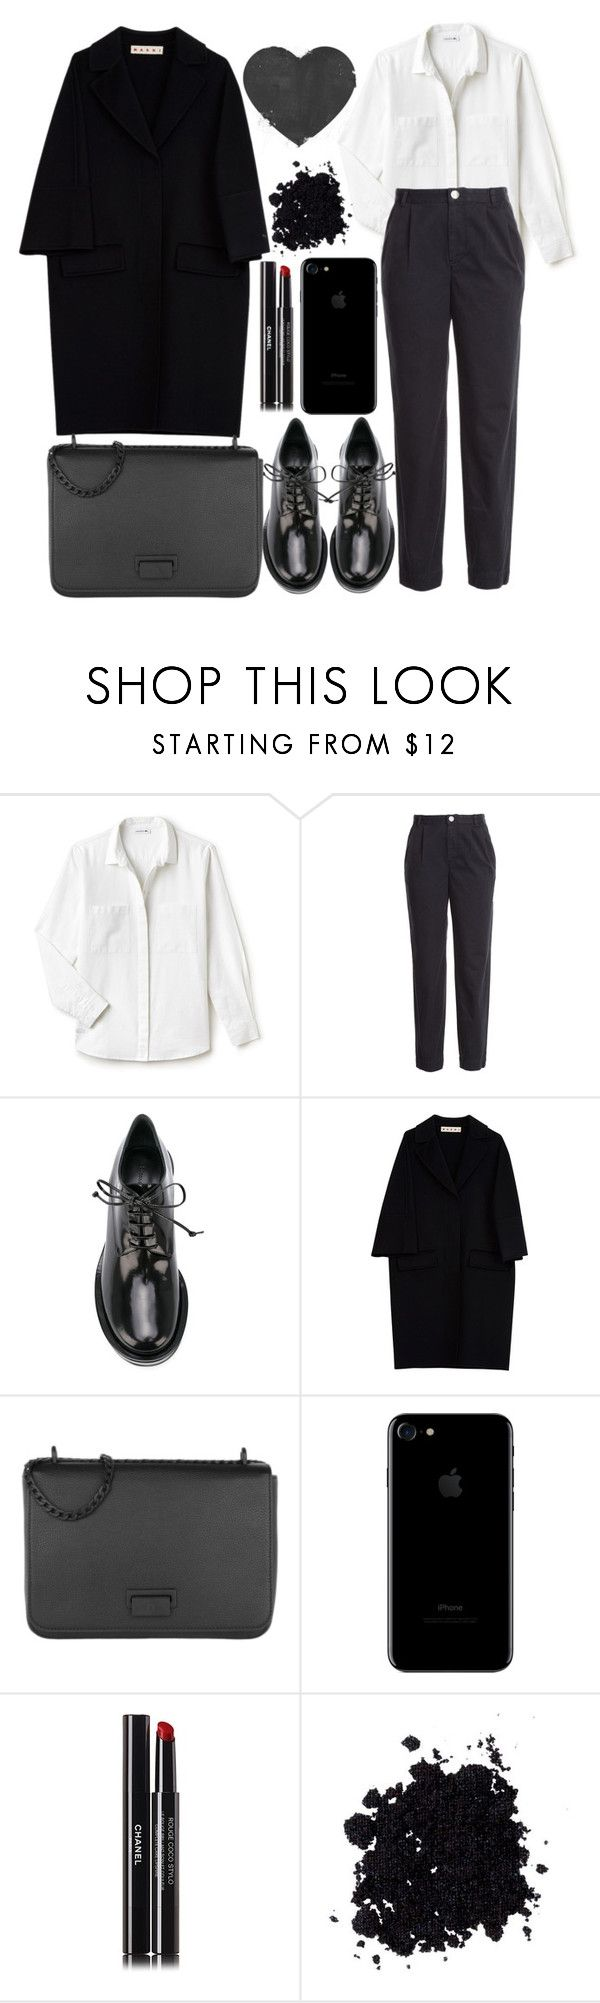 """""""Marc by Marc Jacobs Cotton Chinos"""" by faesadanparkaia ❤ liked on Polyvore featuring Lacoste, Marc by Marc Jacobs, Simone Rocha, Marni, Etienne Aigner and Chanel"""